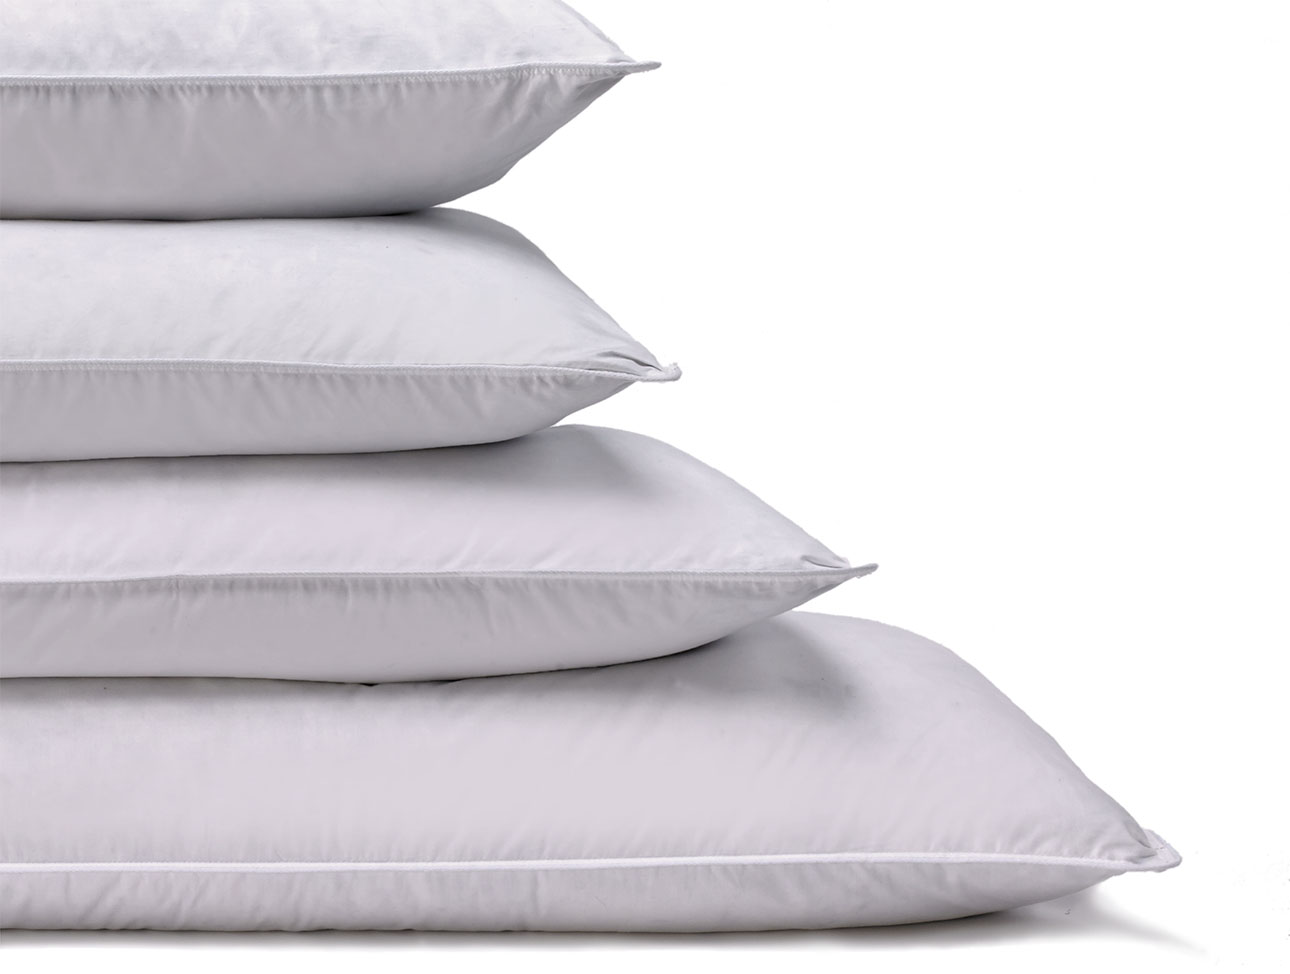 Ritz-Carlton Pillows